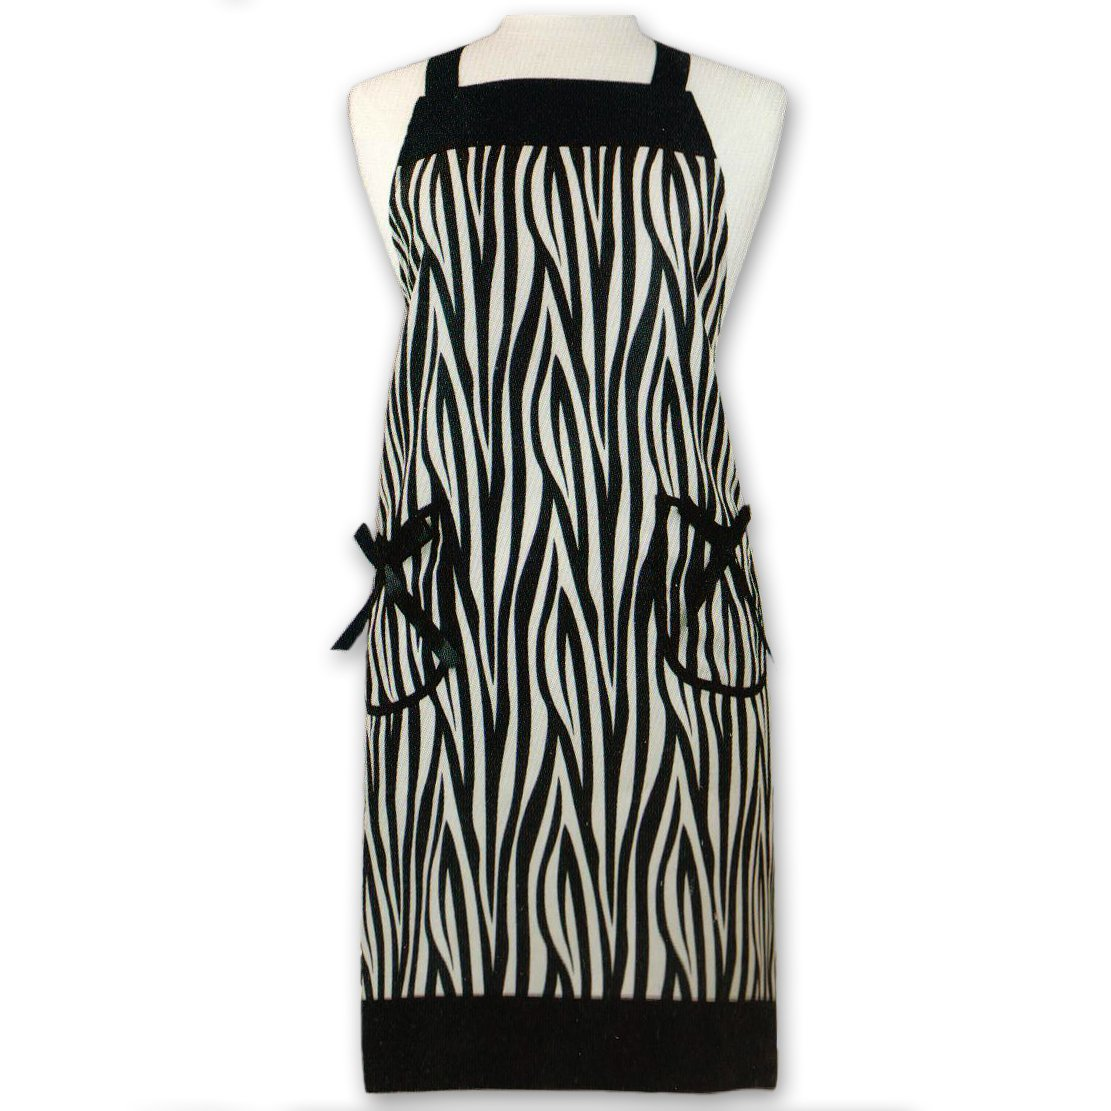 Gourmet Club Zebra Bib Apron with Pockets